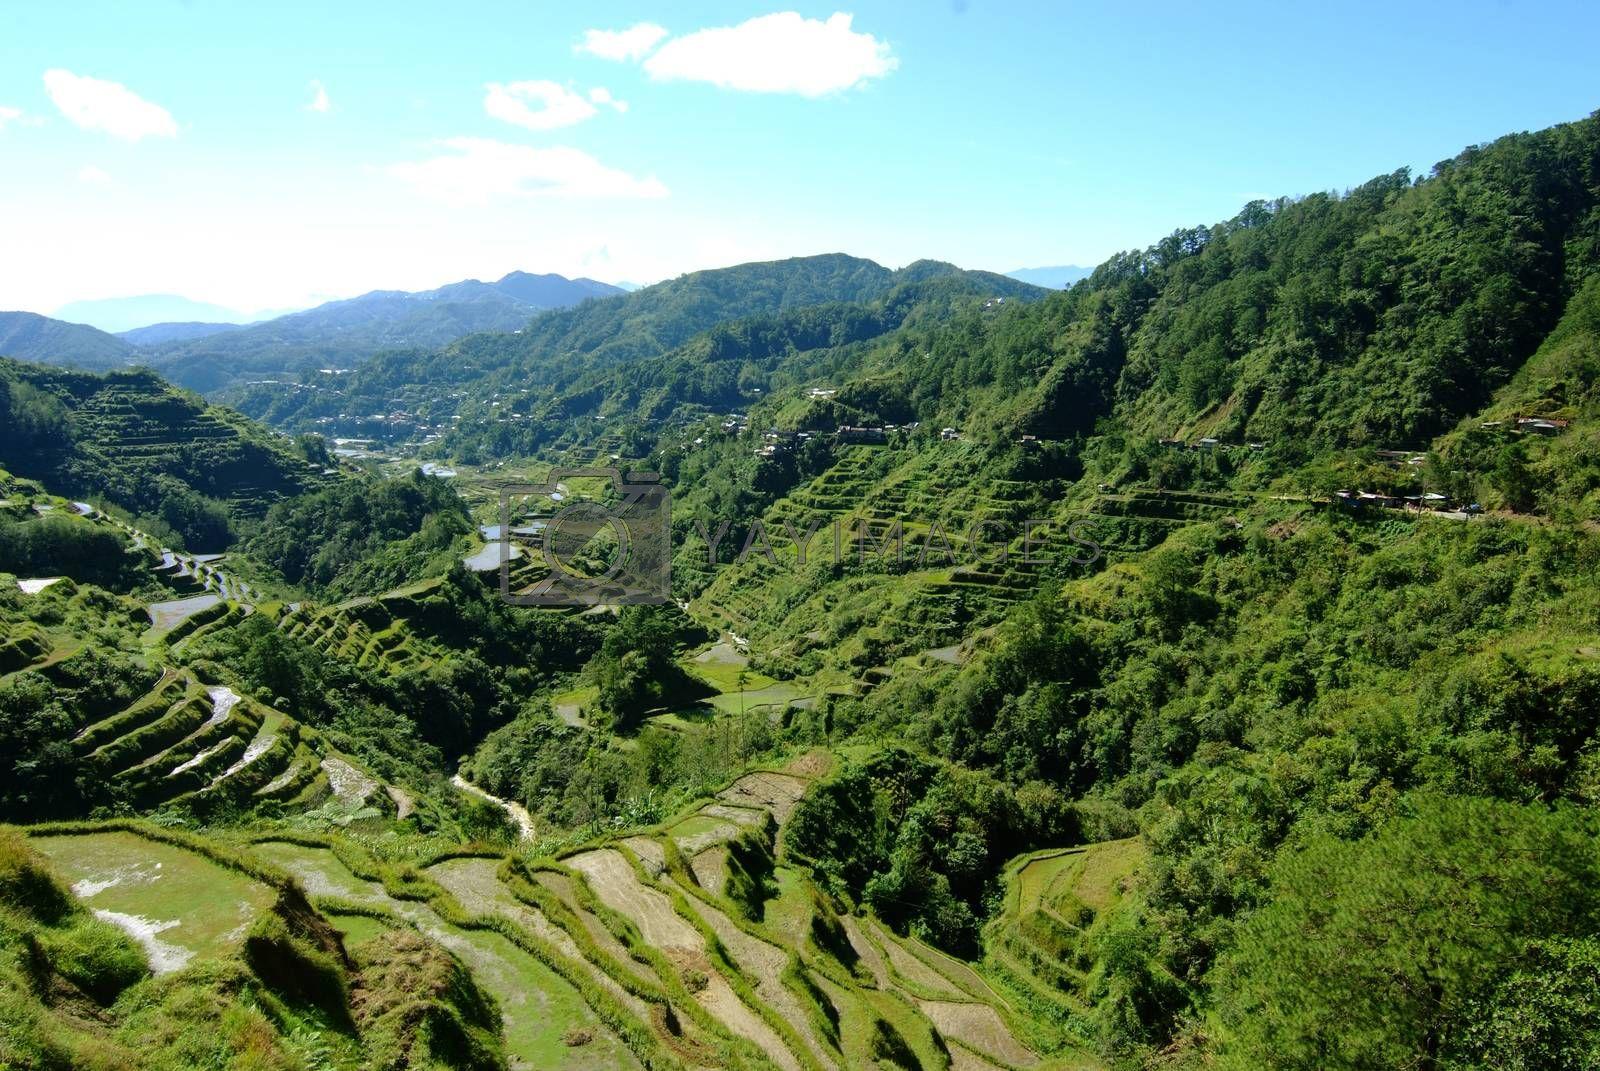 Rice terraces in the Philippines. The village is in a valley among the rice terraces. Rice cultivation in the North of the Philippines Batad Banaue.